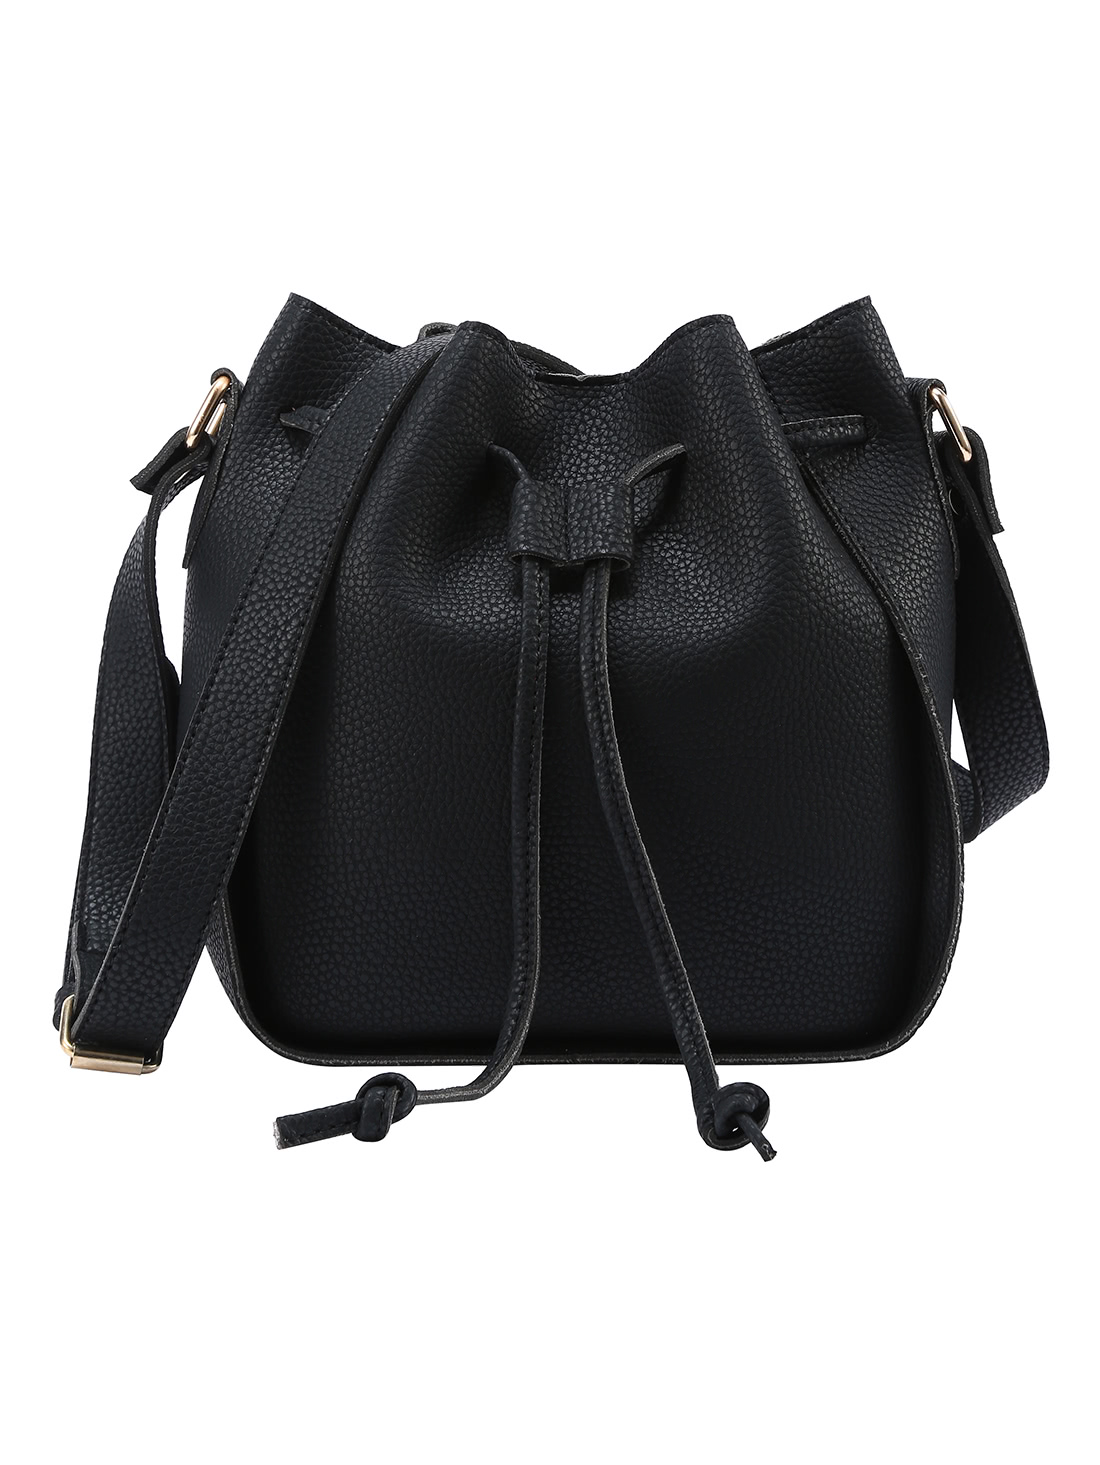 Embossed Faux Leather Drawstring Bucket Bag - BlackEmbossed Faux Leather Drawstring Bucket Bag - Black<br><br>color: Black<br>size: None